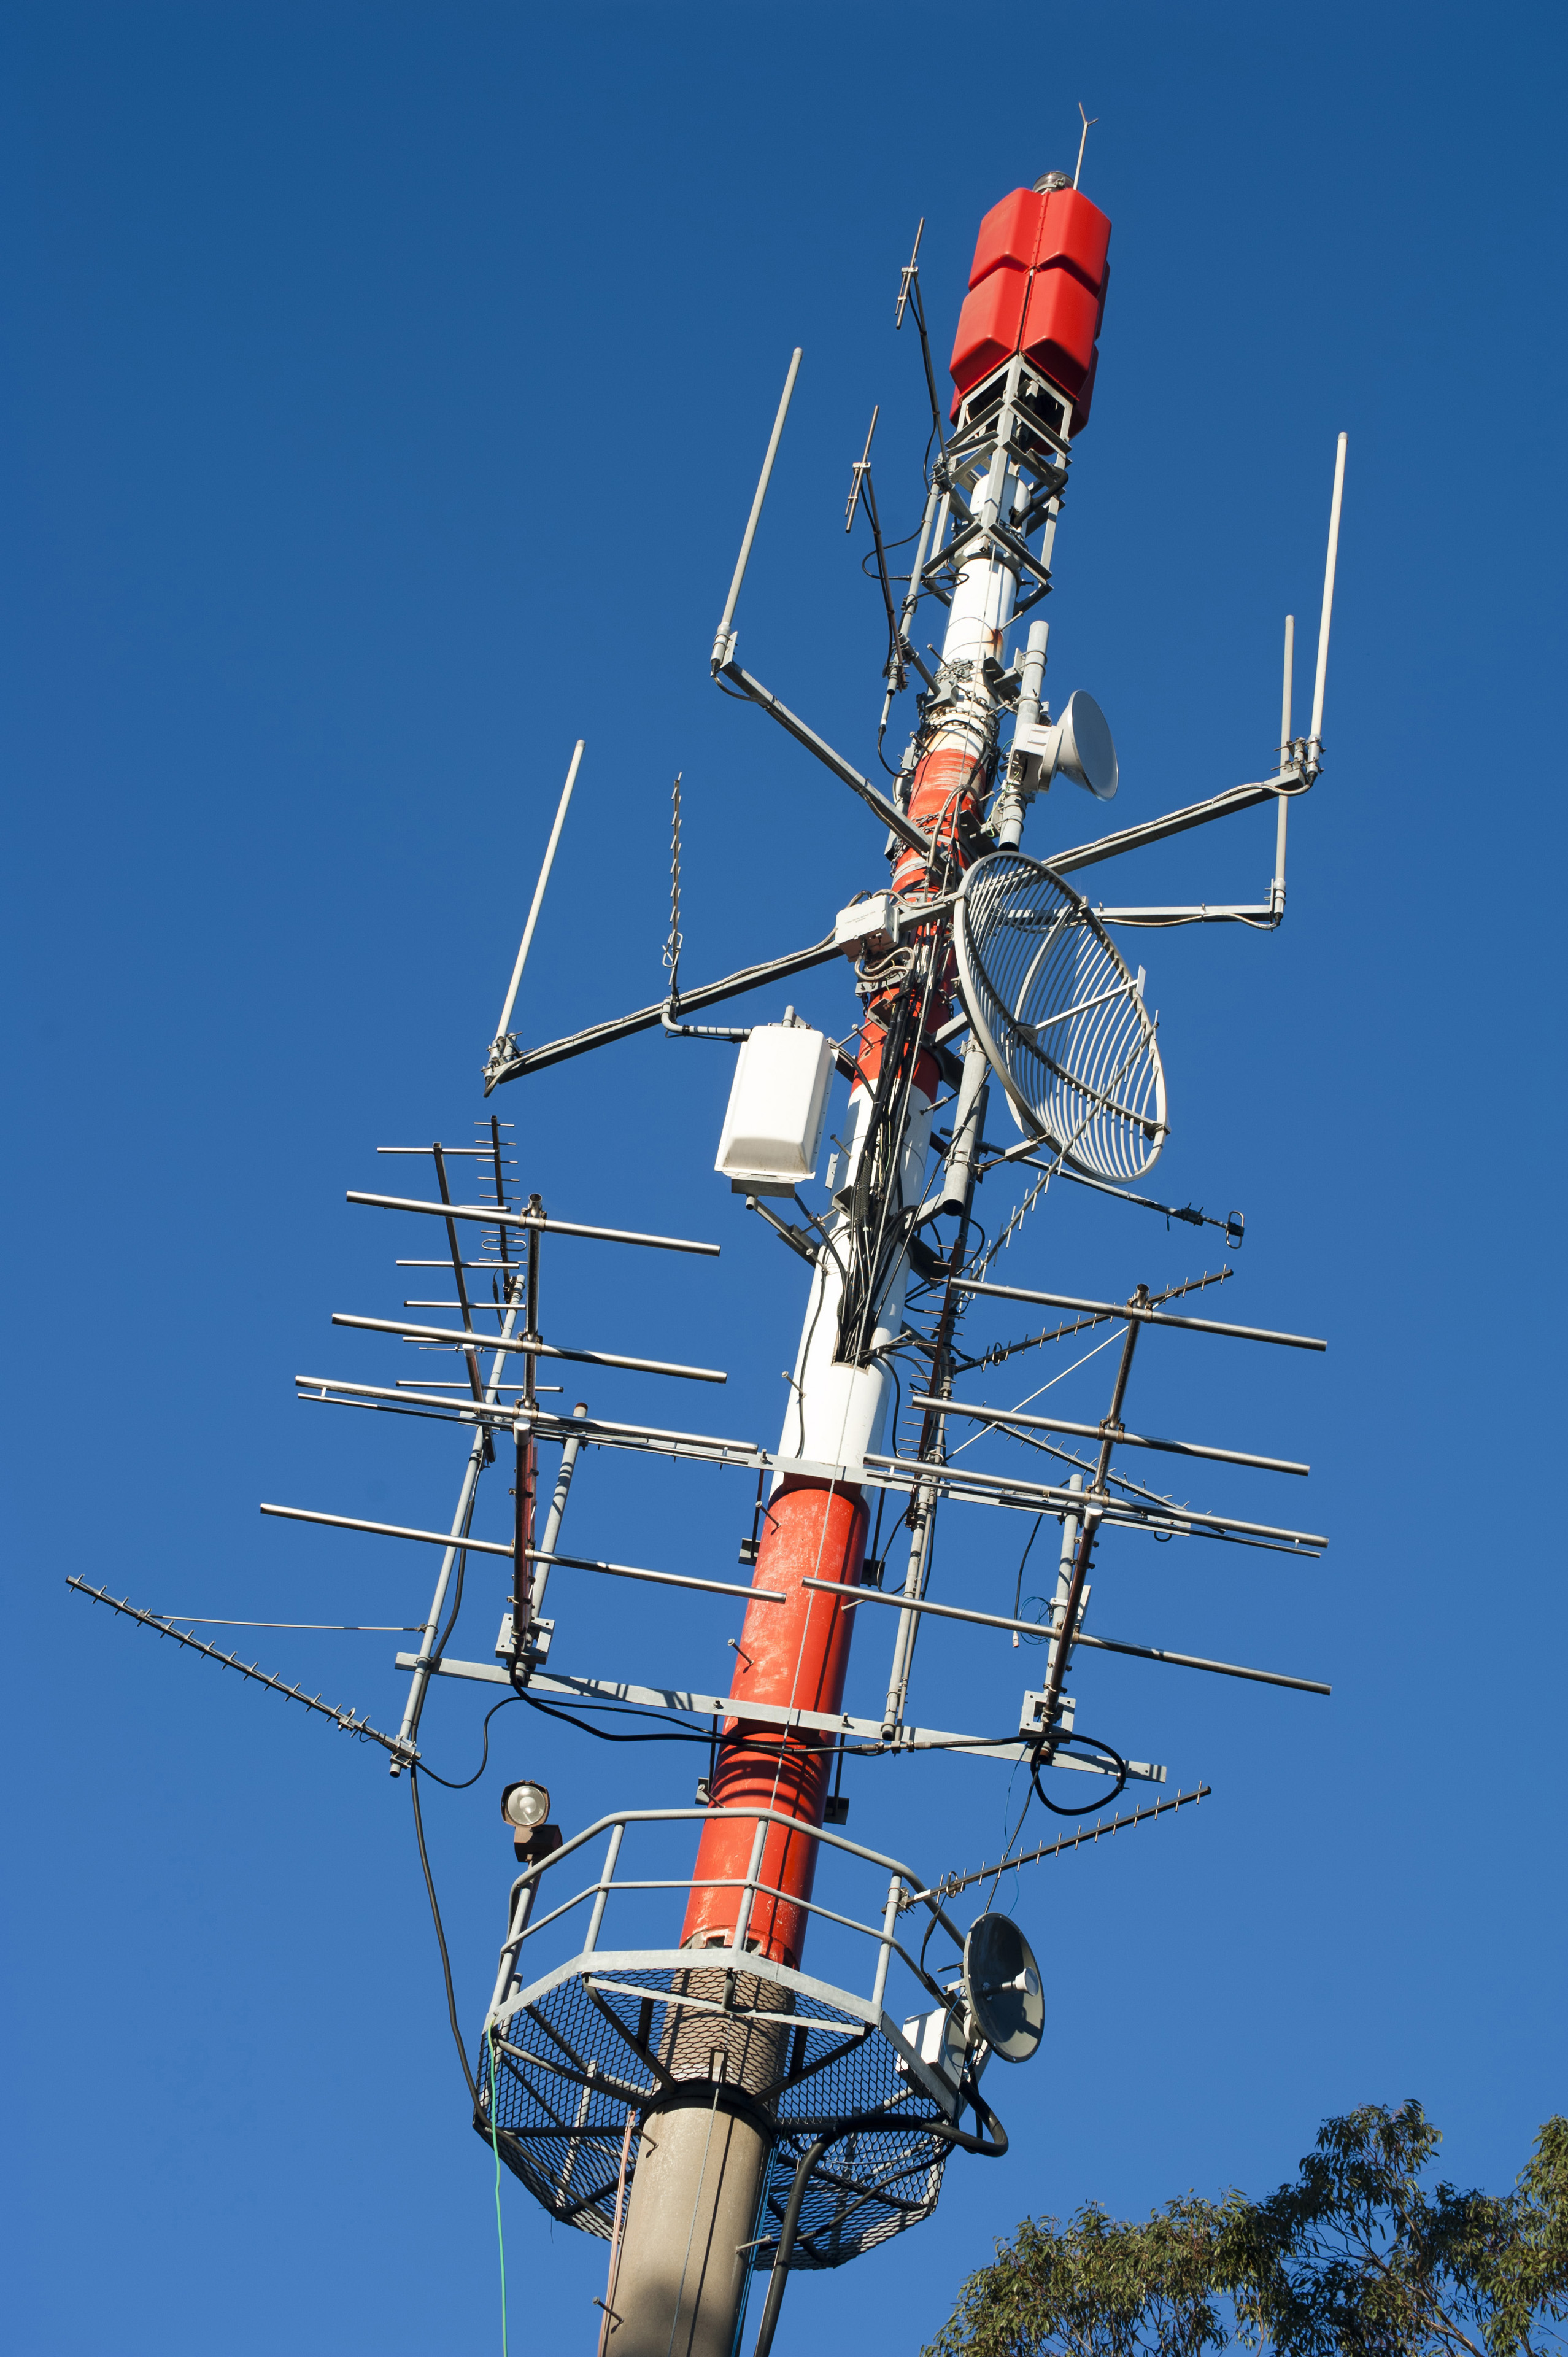 Active communication pole with transmitters, antennas and receivers for telecommunications, against a clear blue sky